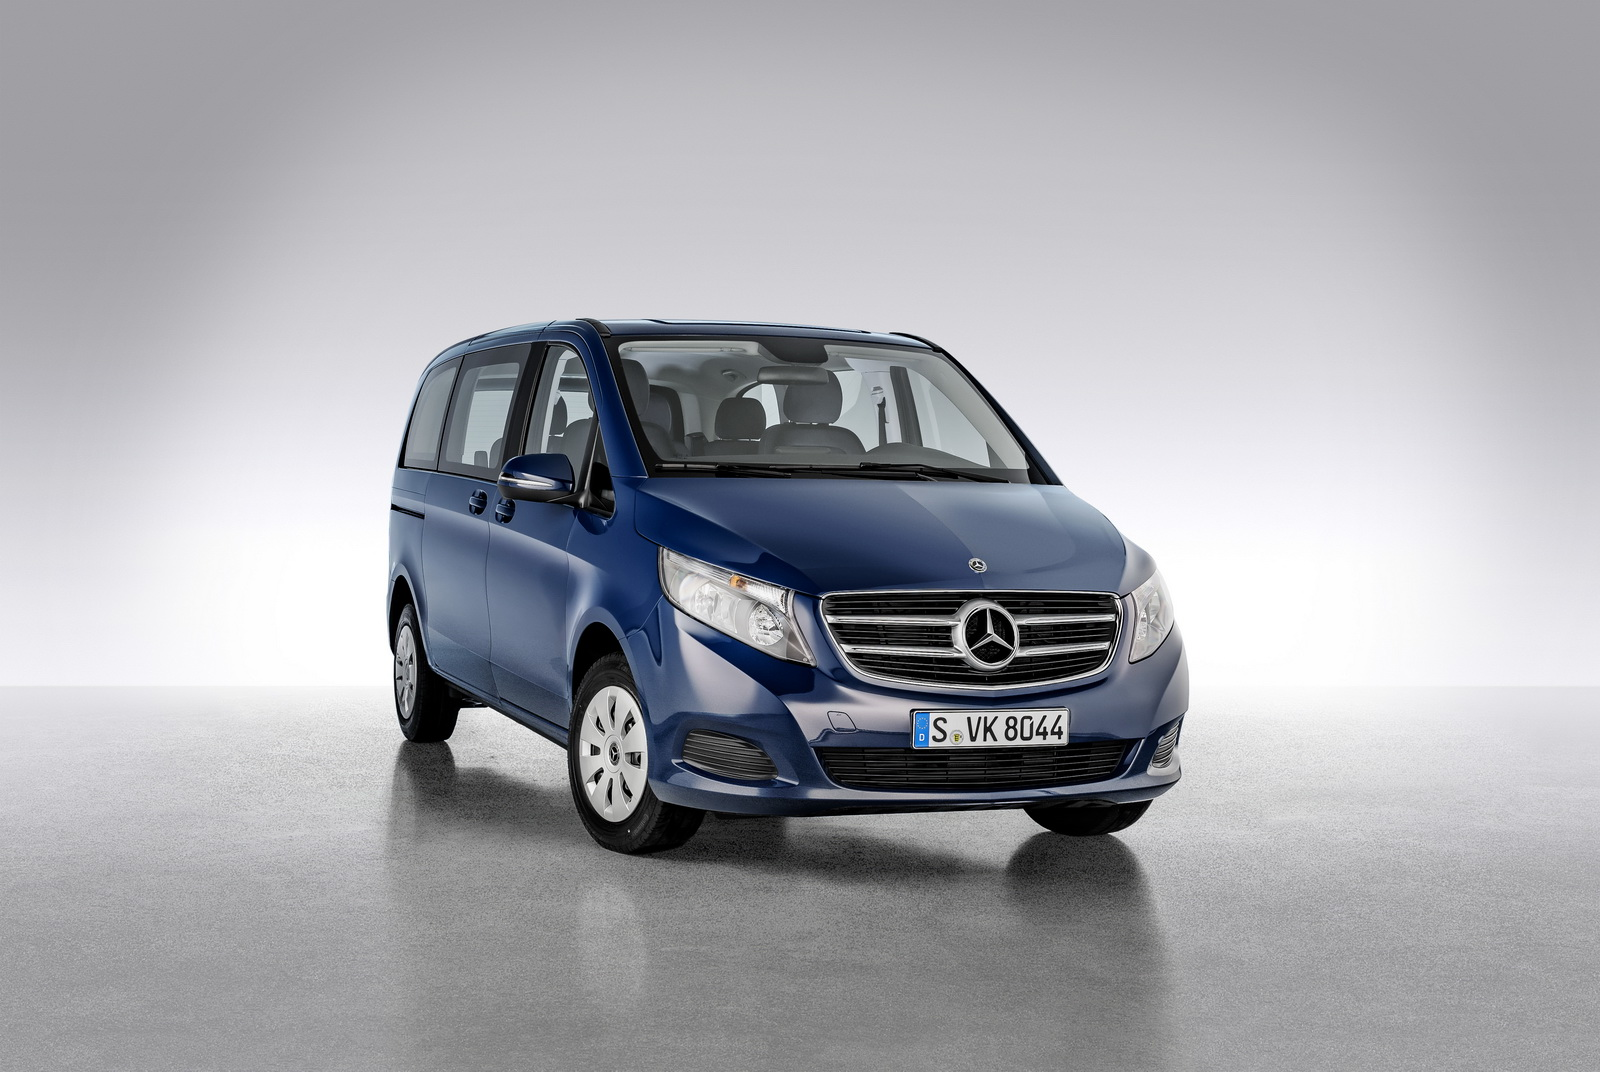 Mercedes benz v class lineup adds rise and limited models for 2018 mercedes benz lineup